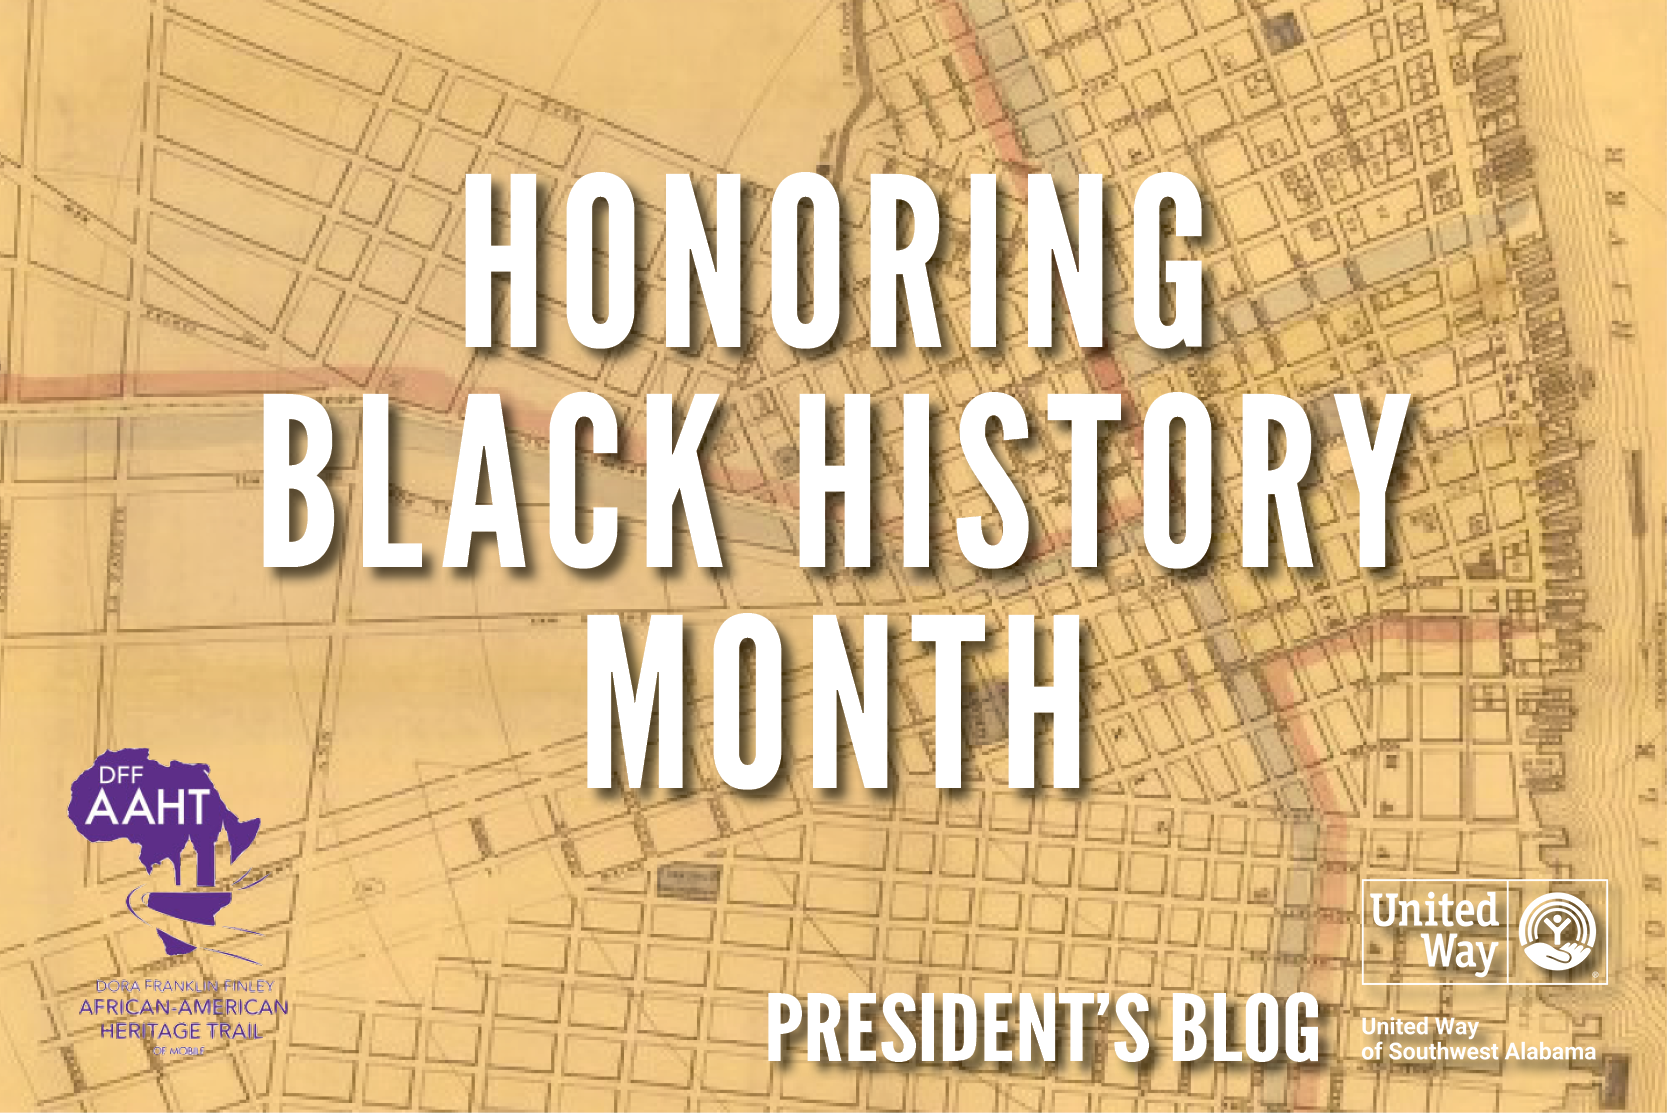 President Blog - Honoring Black History Month